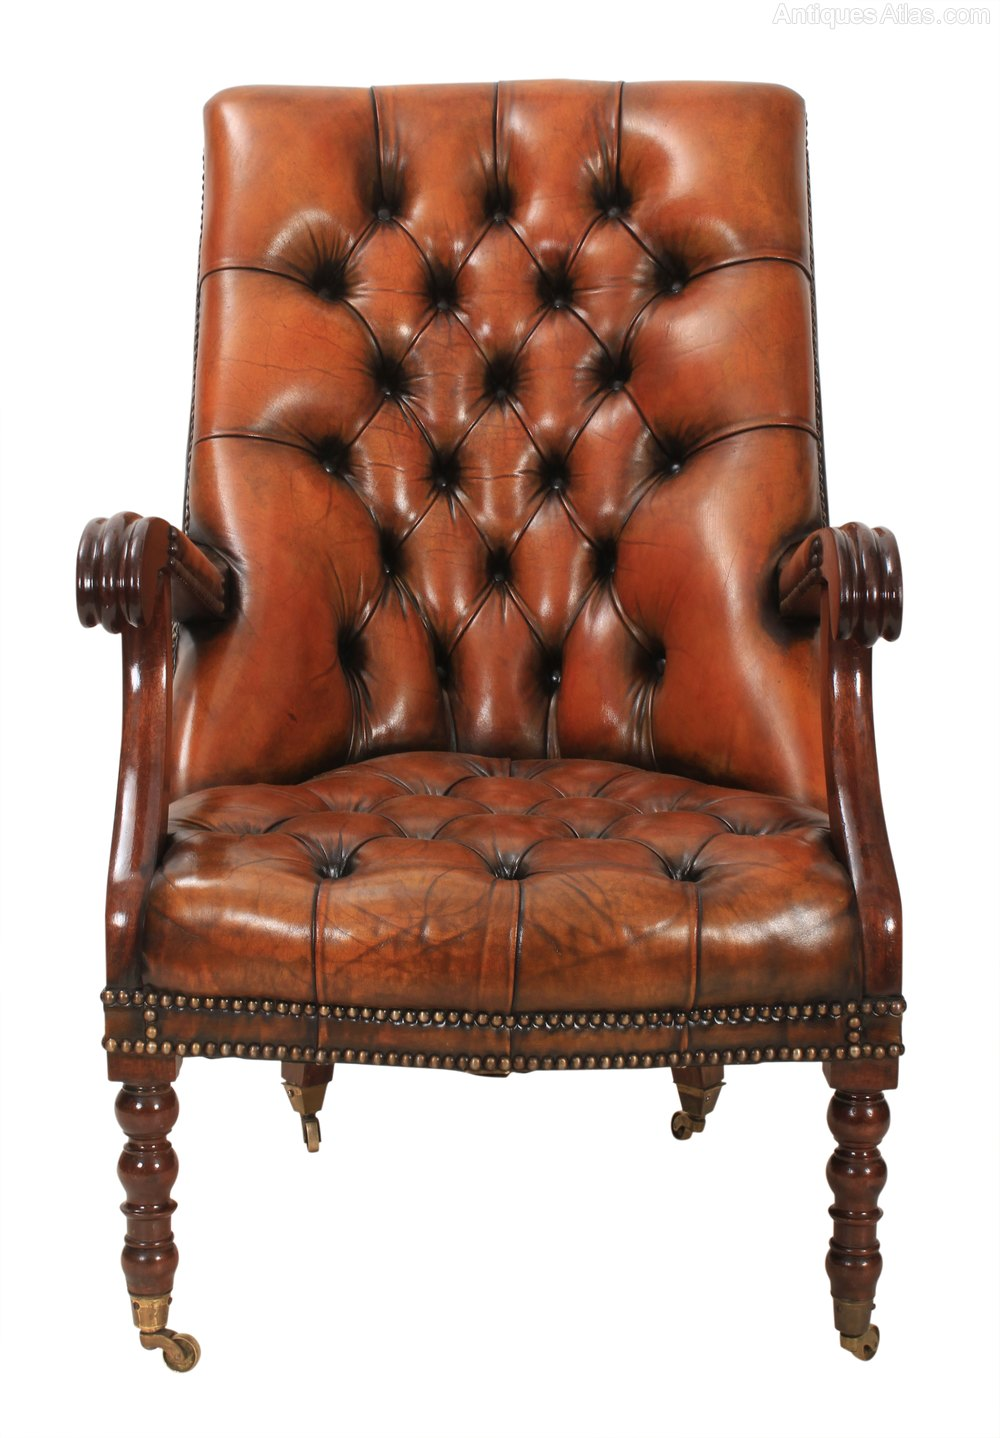 Mahogany and Leather Chesterfield Library Chair Antique Library Chairs ... - Mahogany And Leather Chesterfield Library Chair - Antiques Atlas